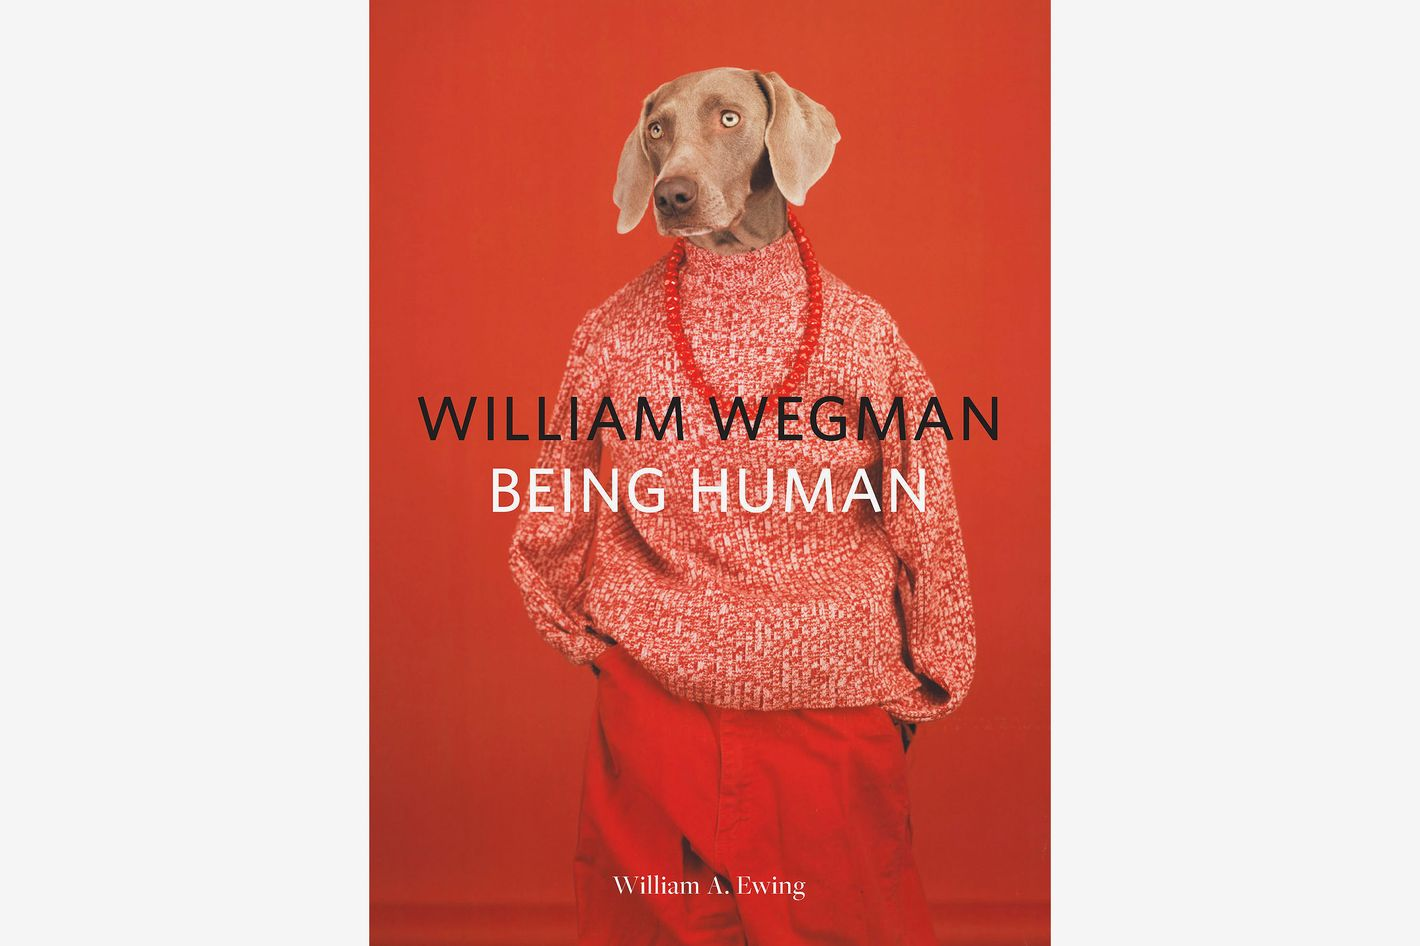 William Wegman: Being Human